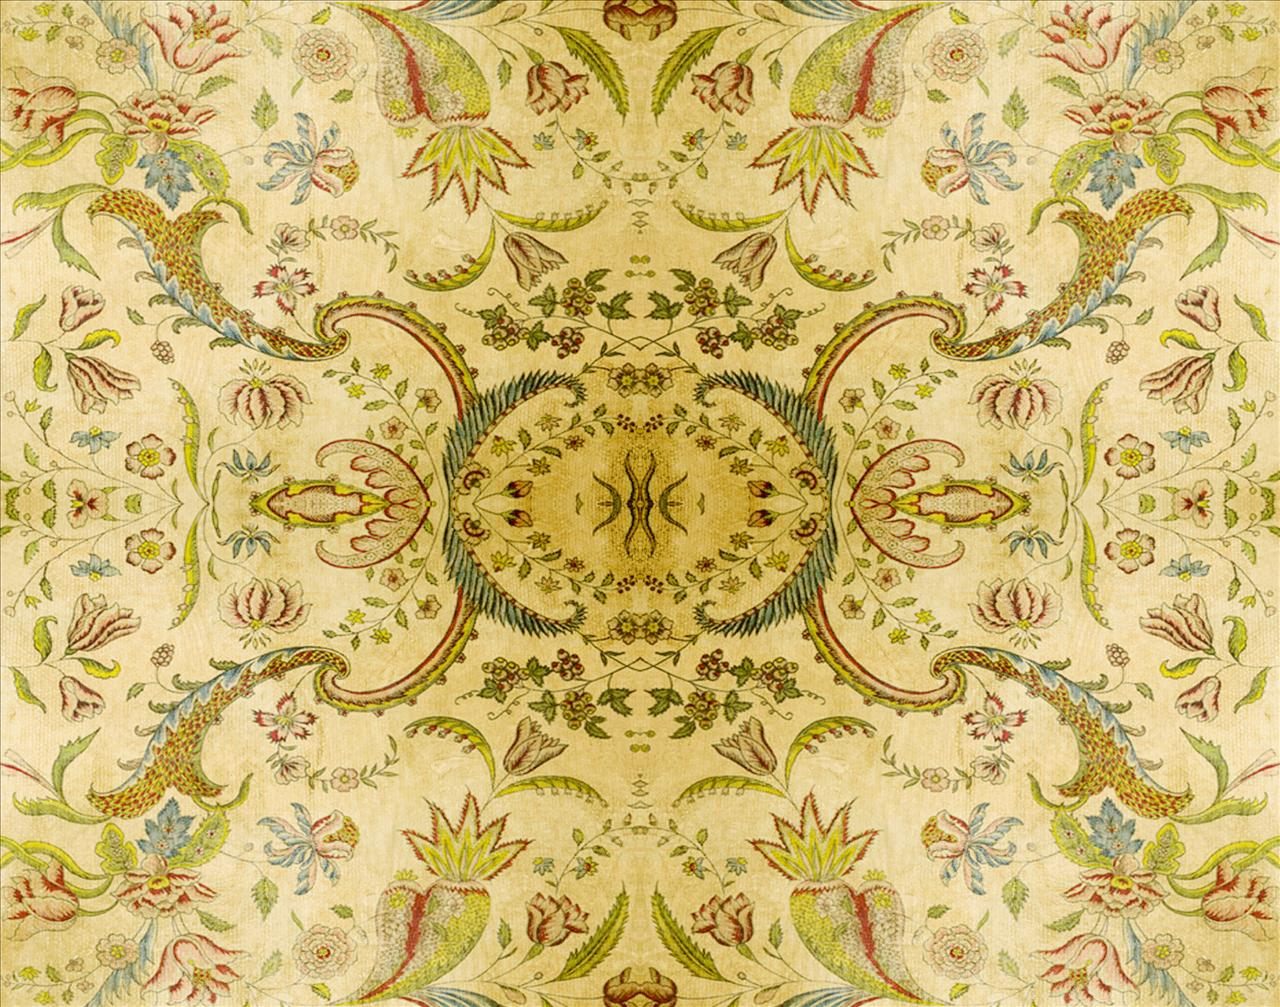 Free download vintage wallpaper pattern vintage desktop